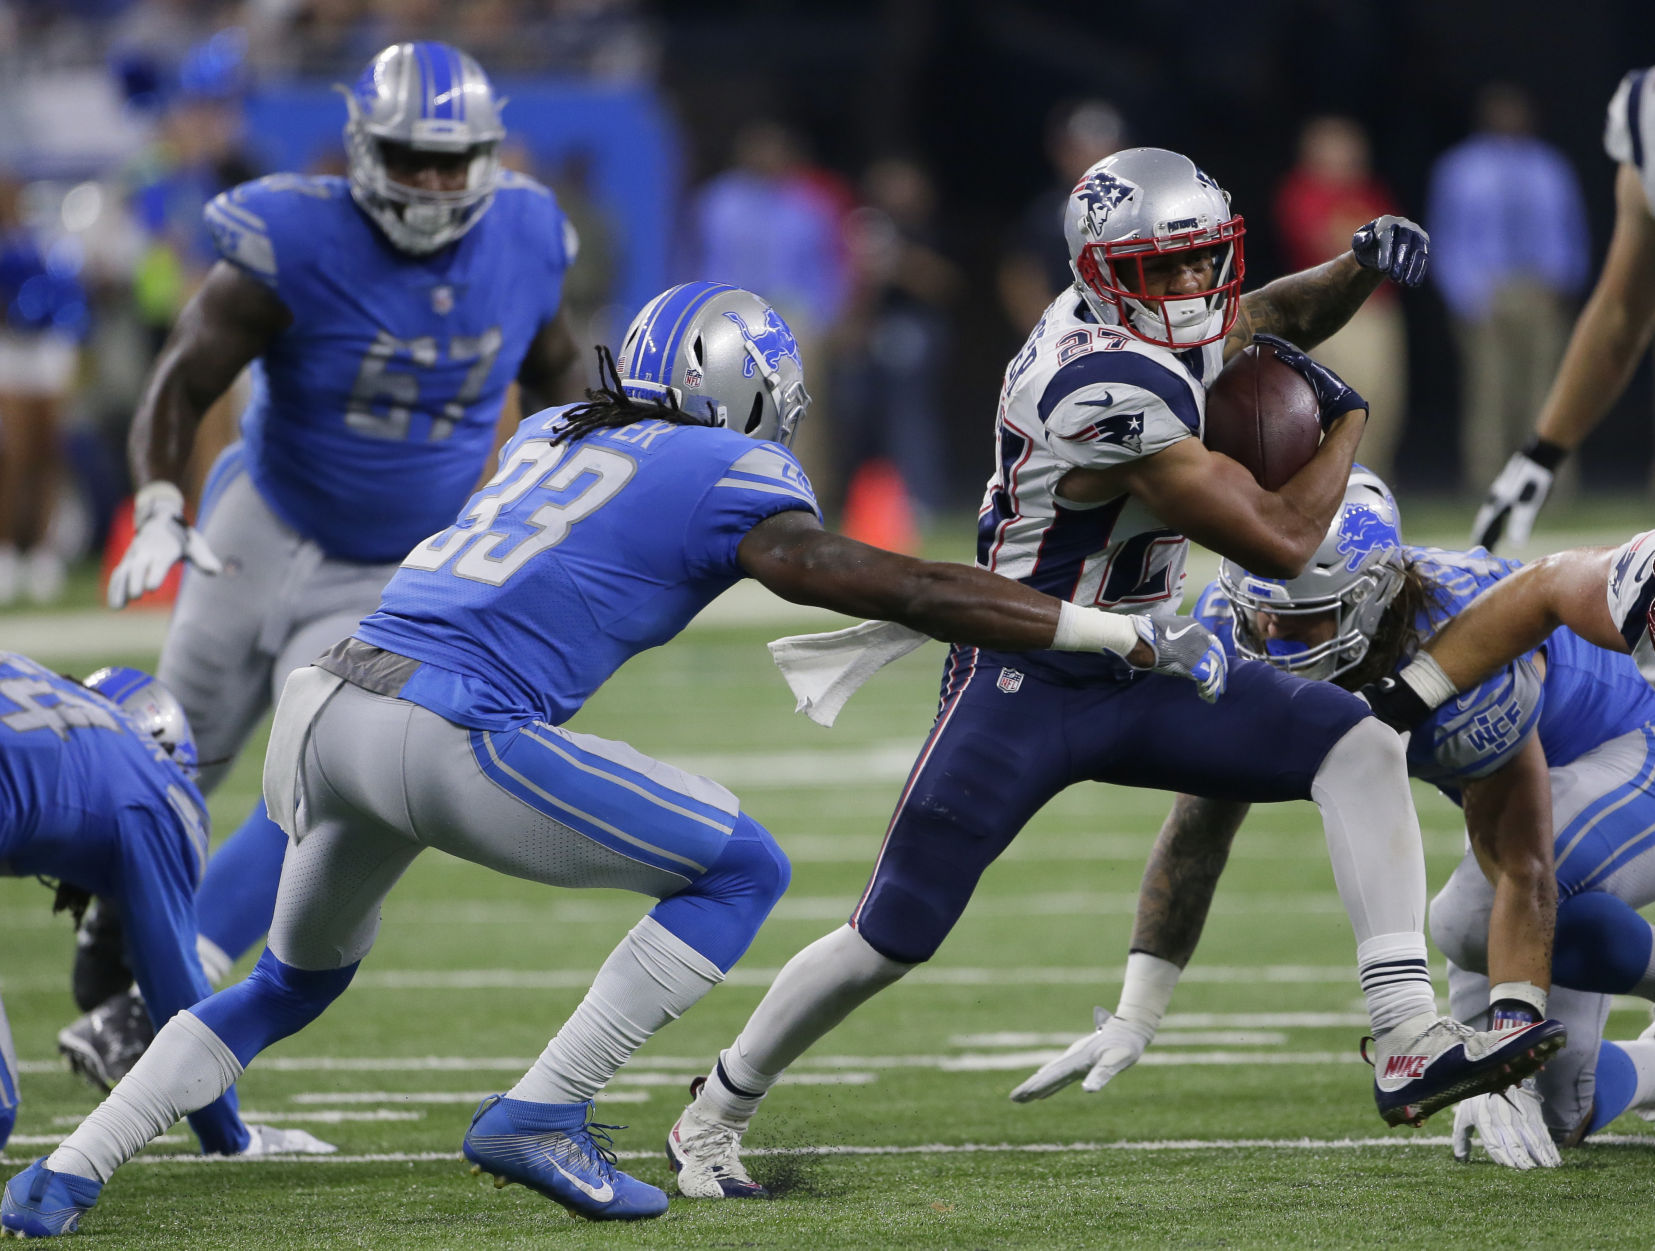 Watch New York Giants Vs. New England Patriots Live Stream